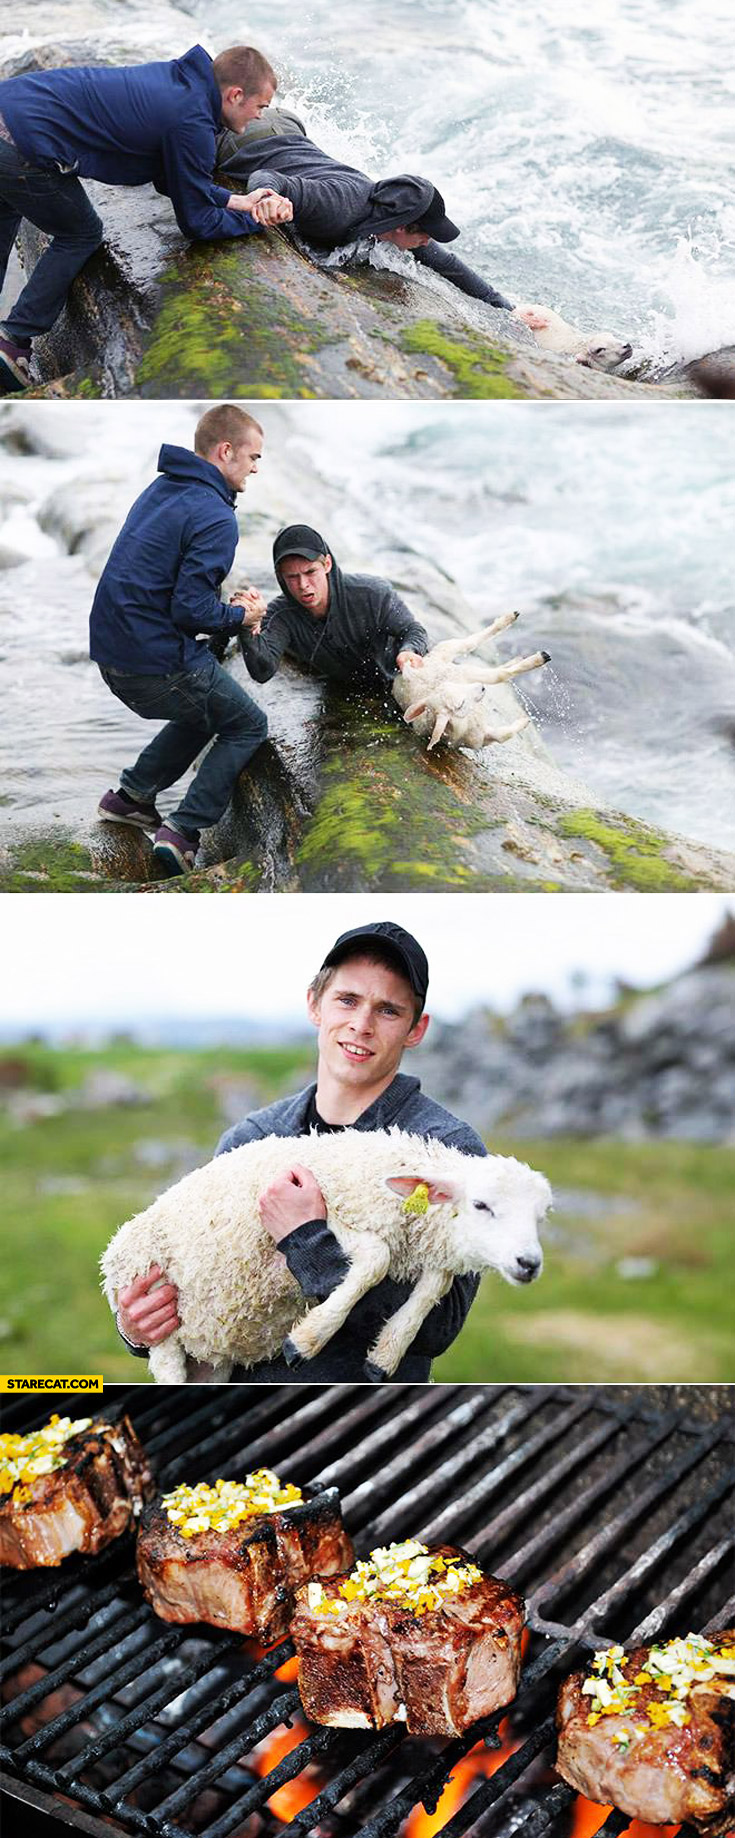 Real hero saves a sheep